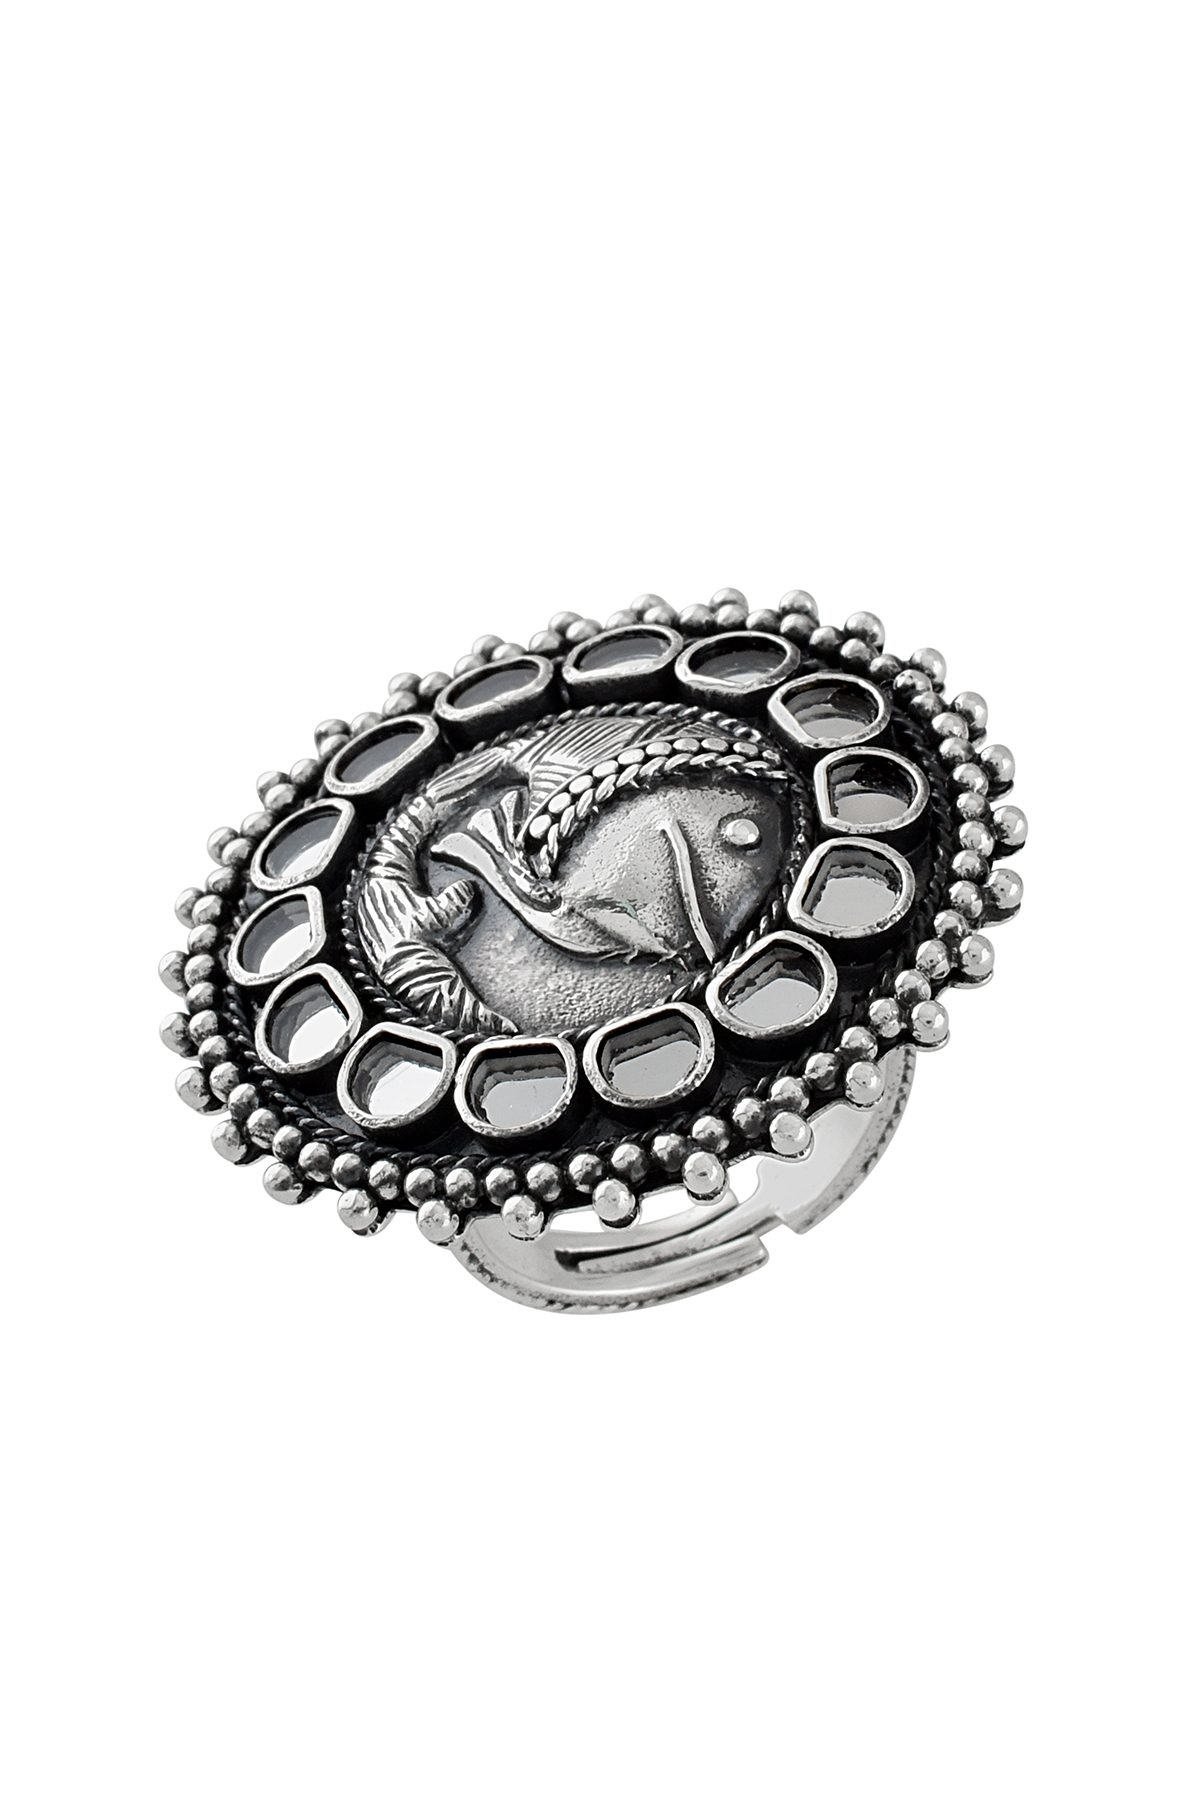 Silver Oxidised Fish Motif Rawa Mirror Adjustable Ring